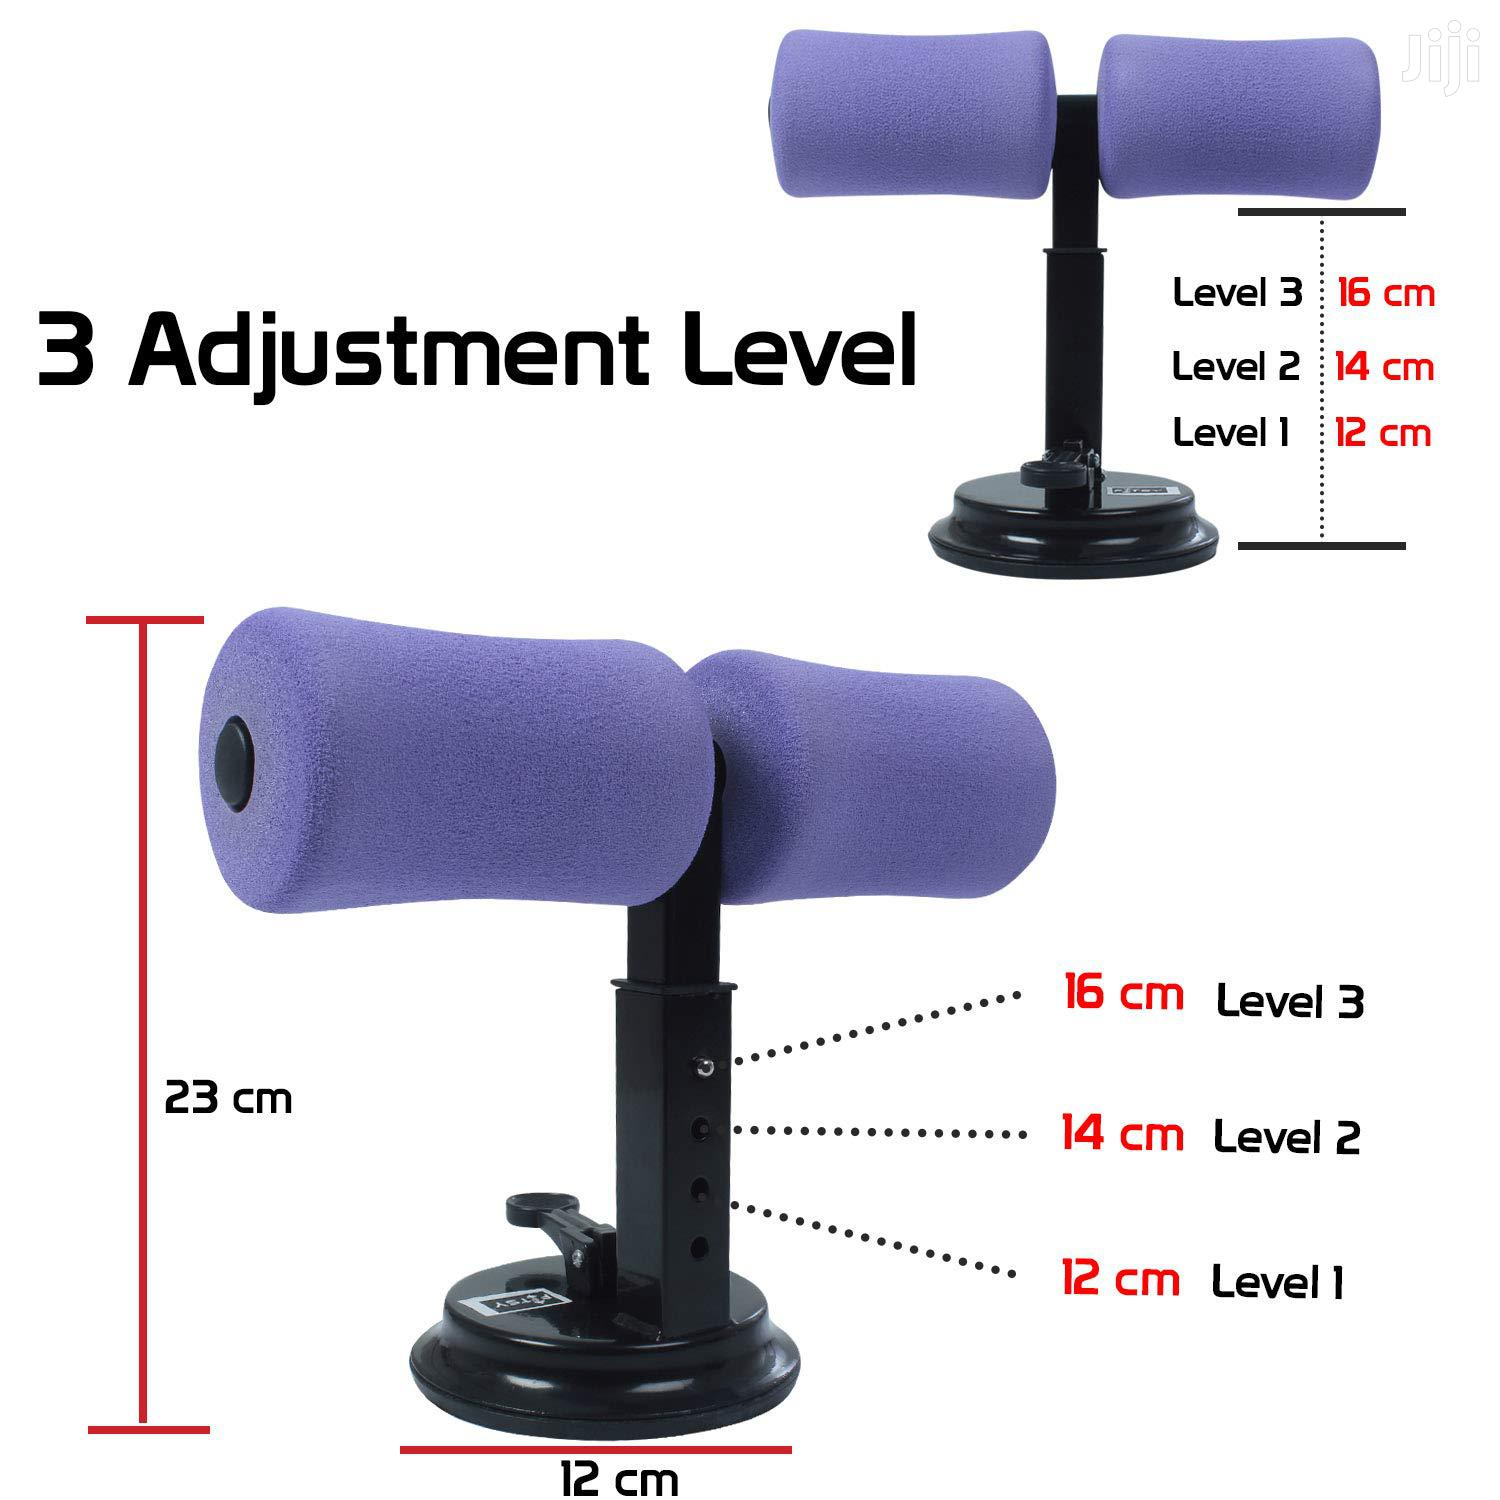 Situp Bar Adjustable Self-suction   Sports Equipment for sale in Accra Metropolitan, Greater Accra, Ghana